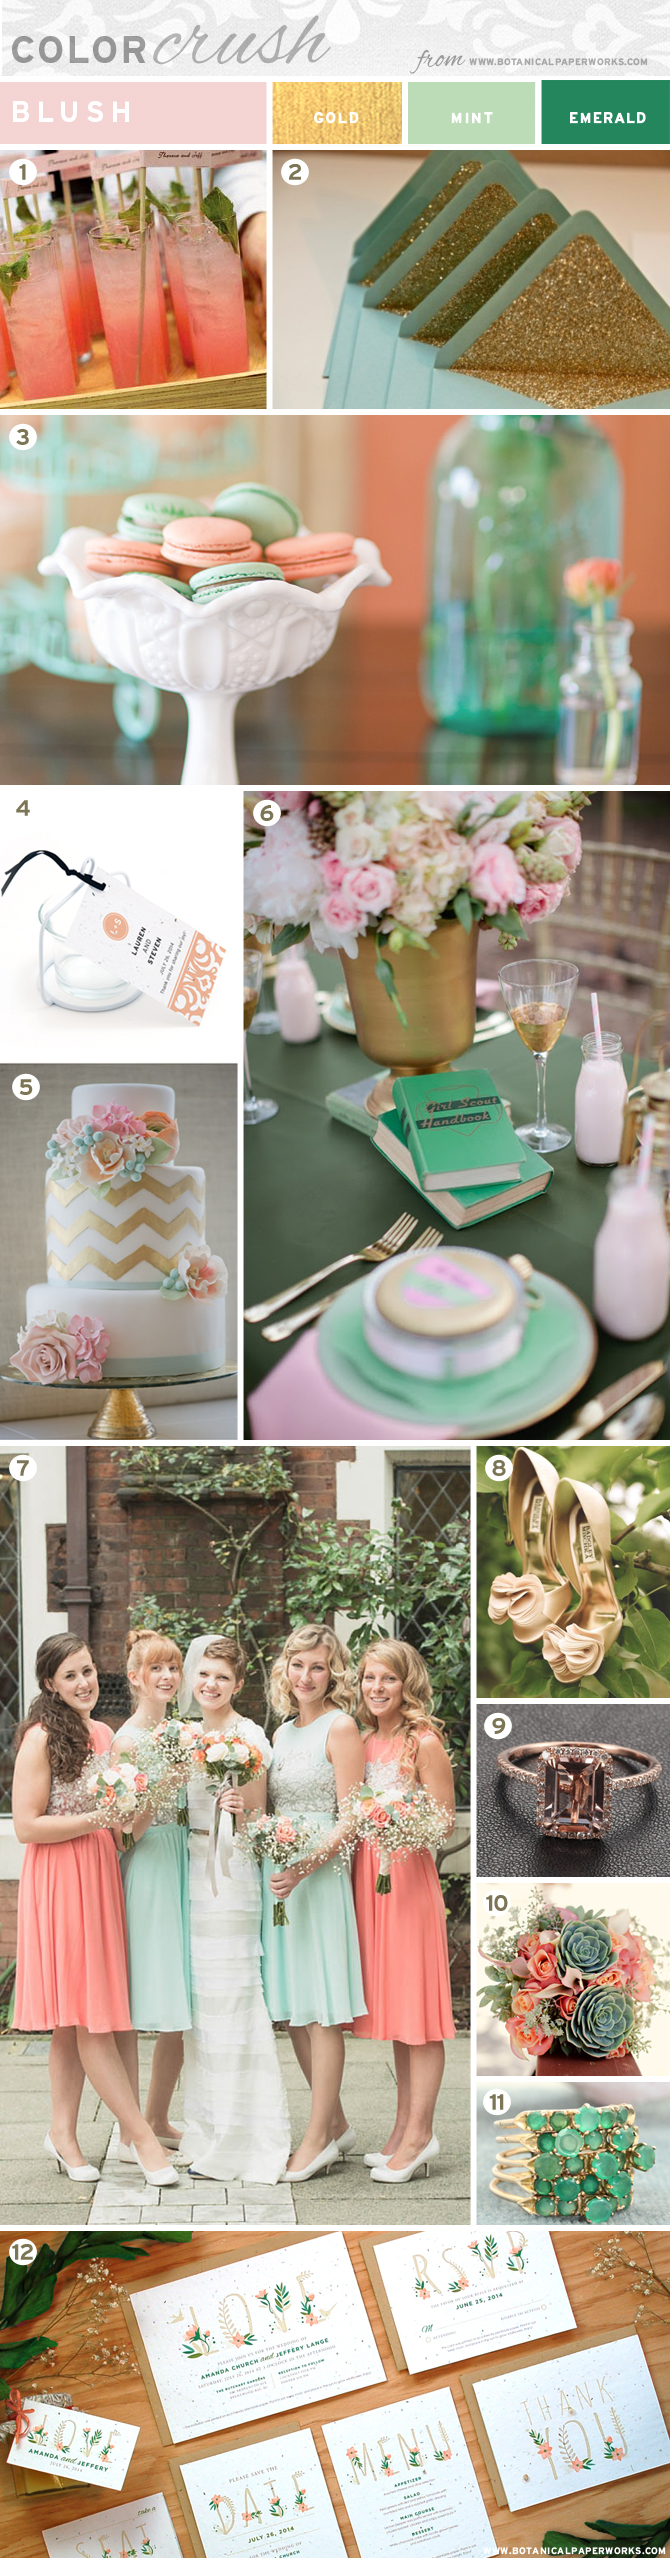 Blush with Mint and Gold